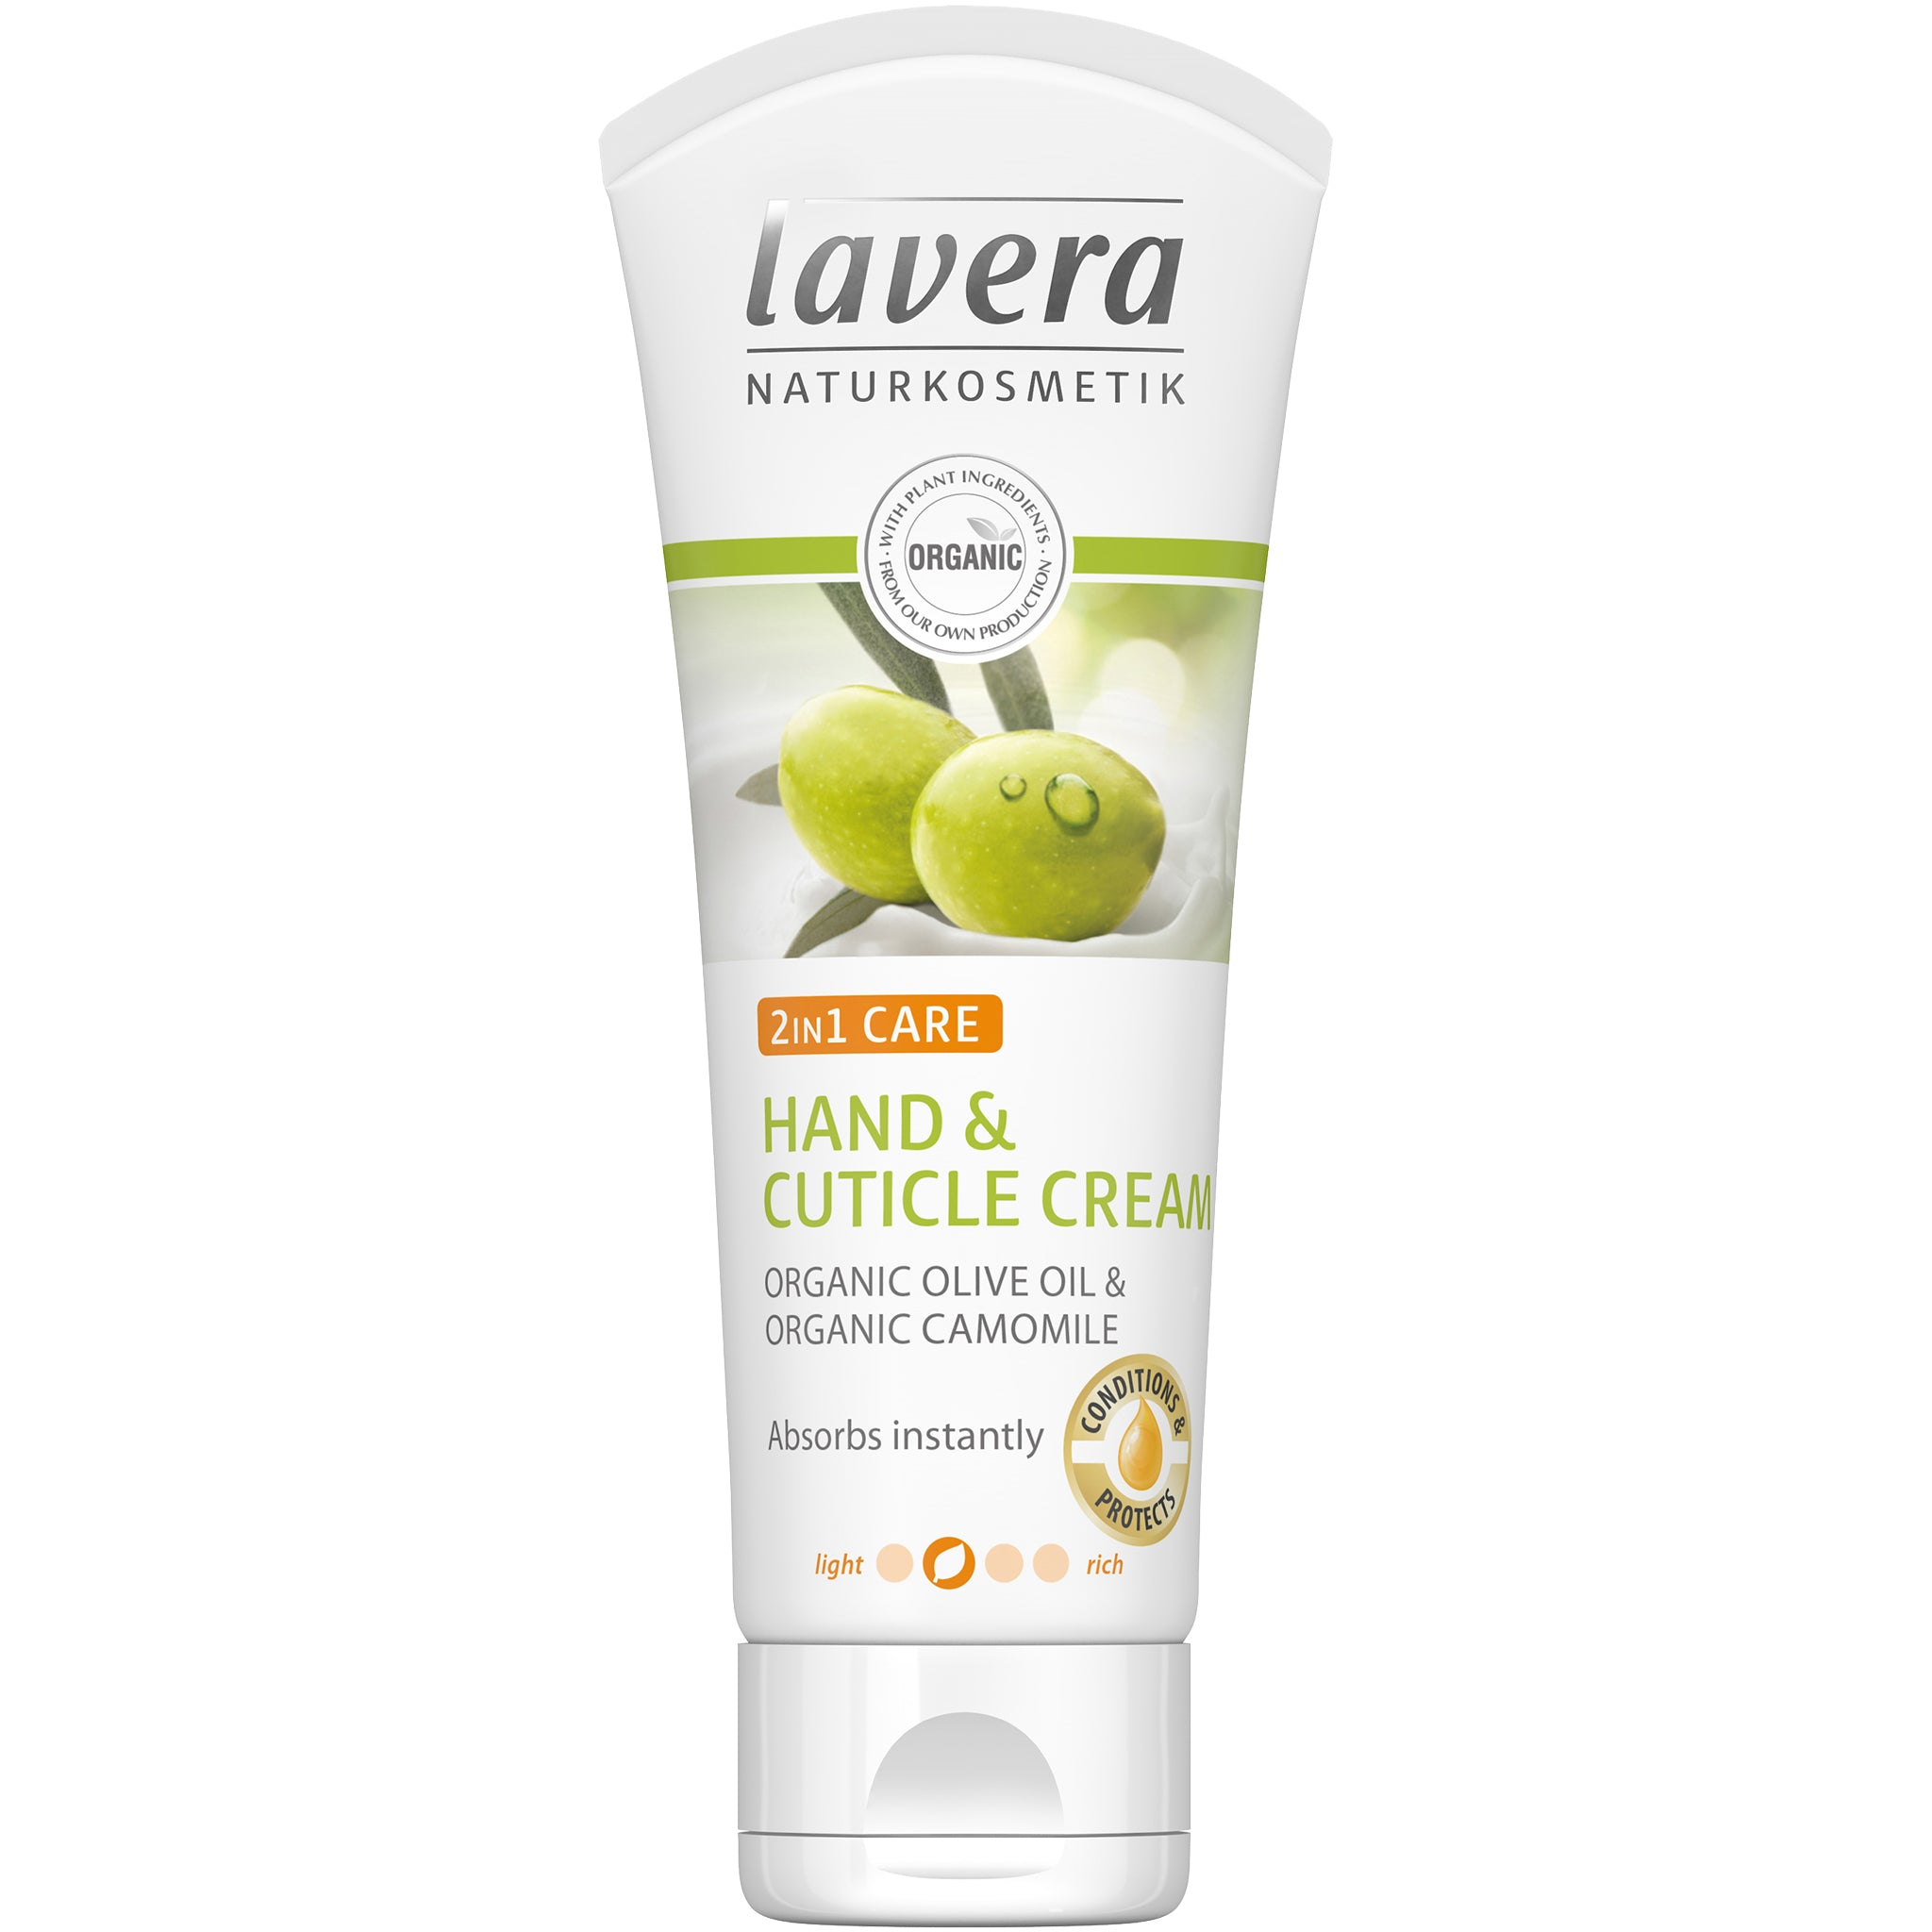 2 in 1 Hand & Cuticle Cream with Organic Olive Oil